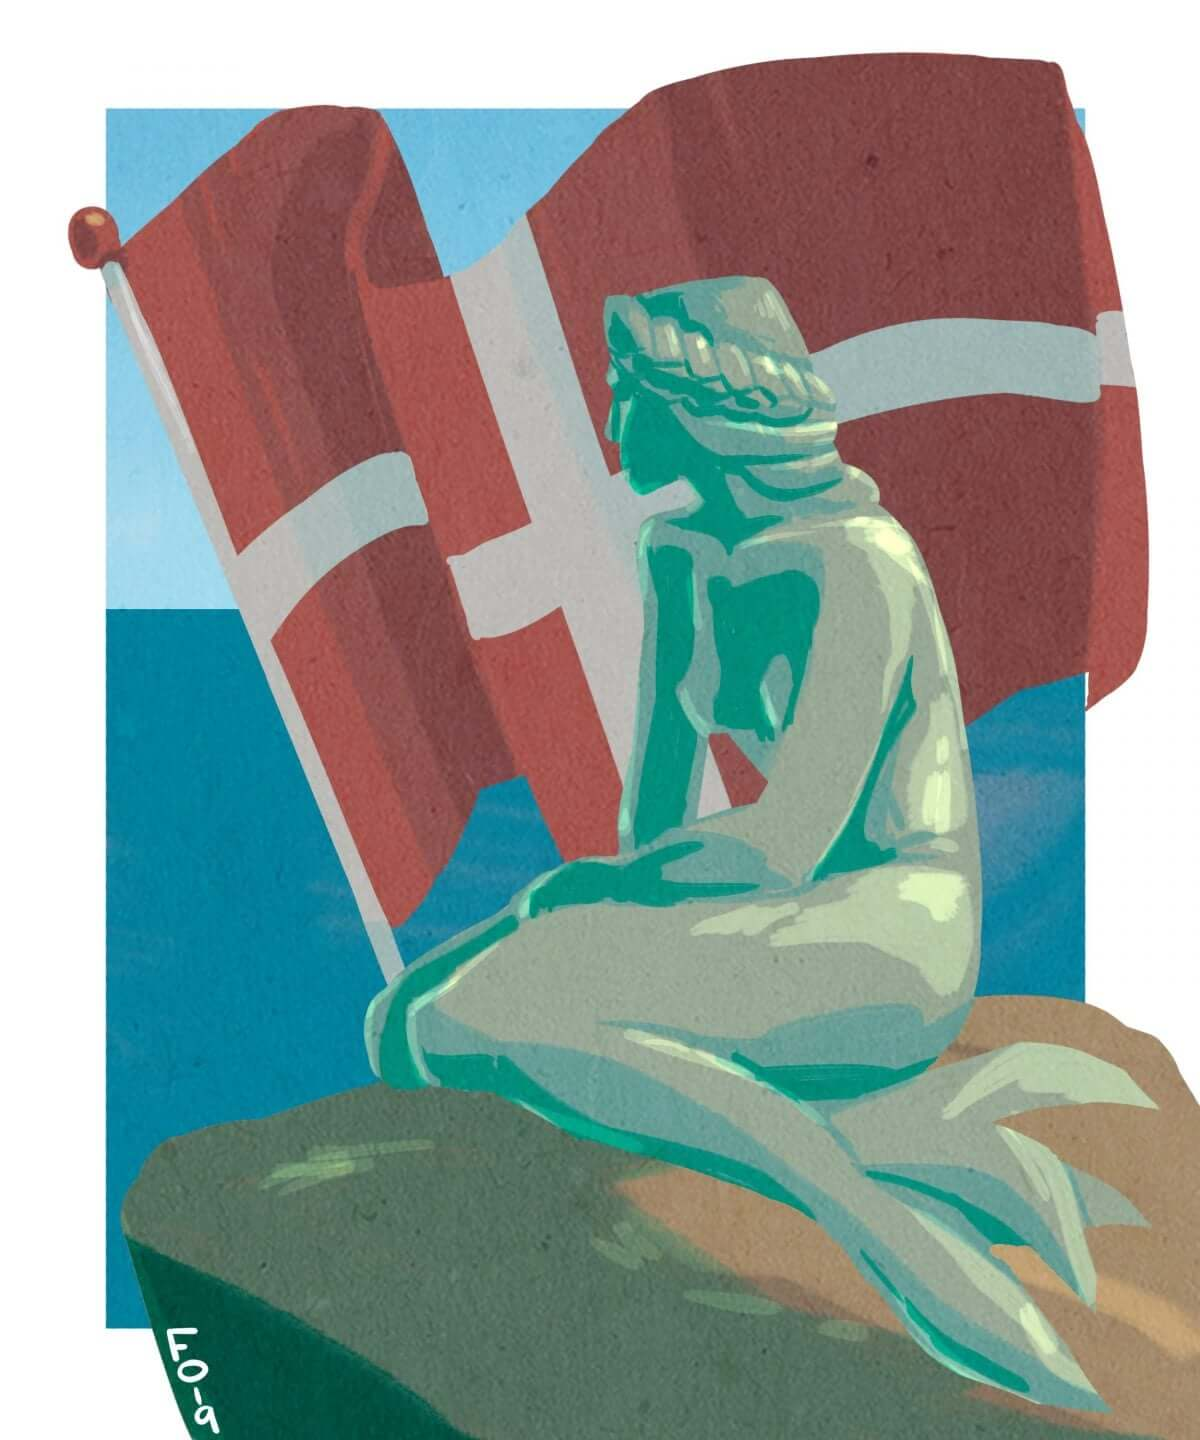 In honour of Liberation Day and it still being Mermay, here's the most Danish Mermaid of them all.